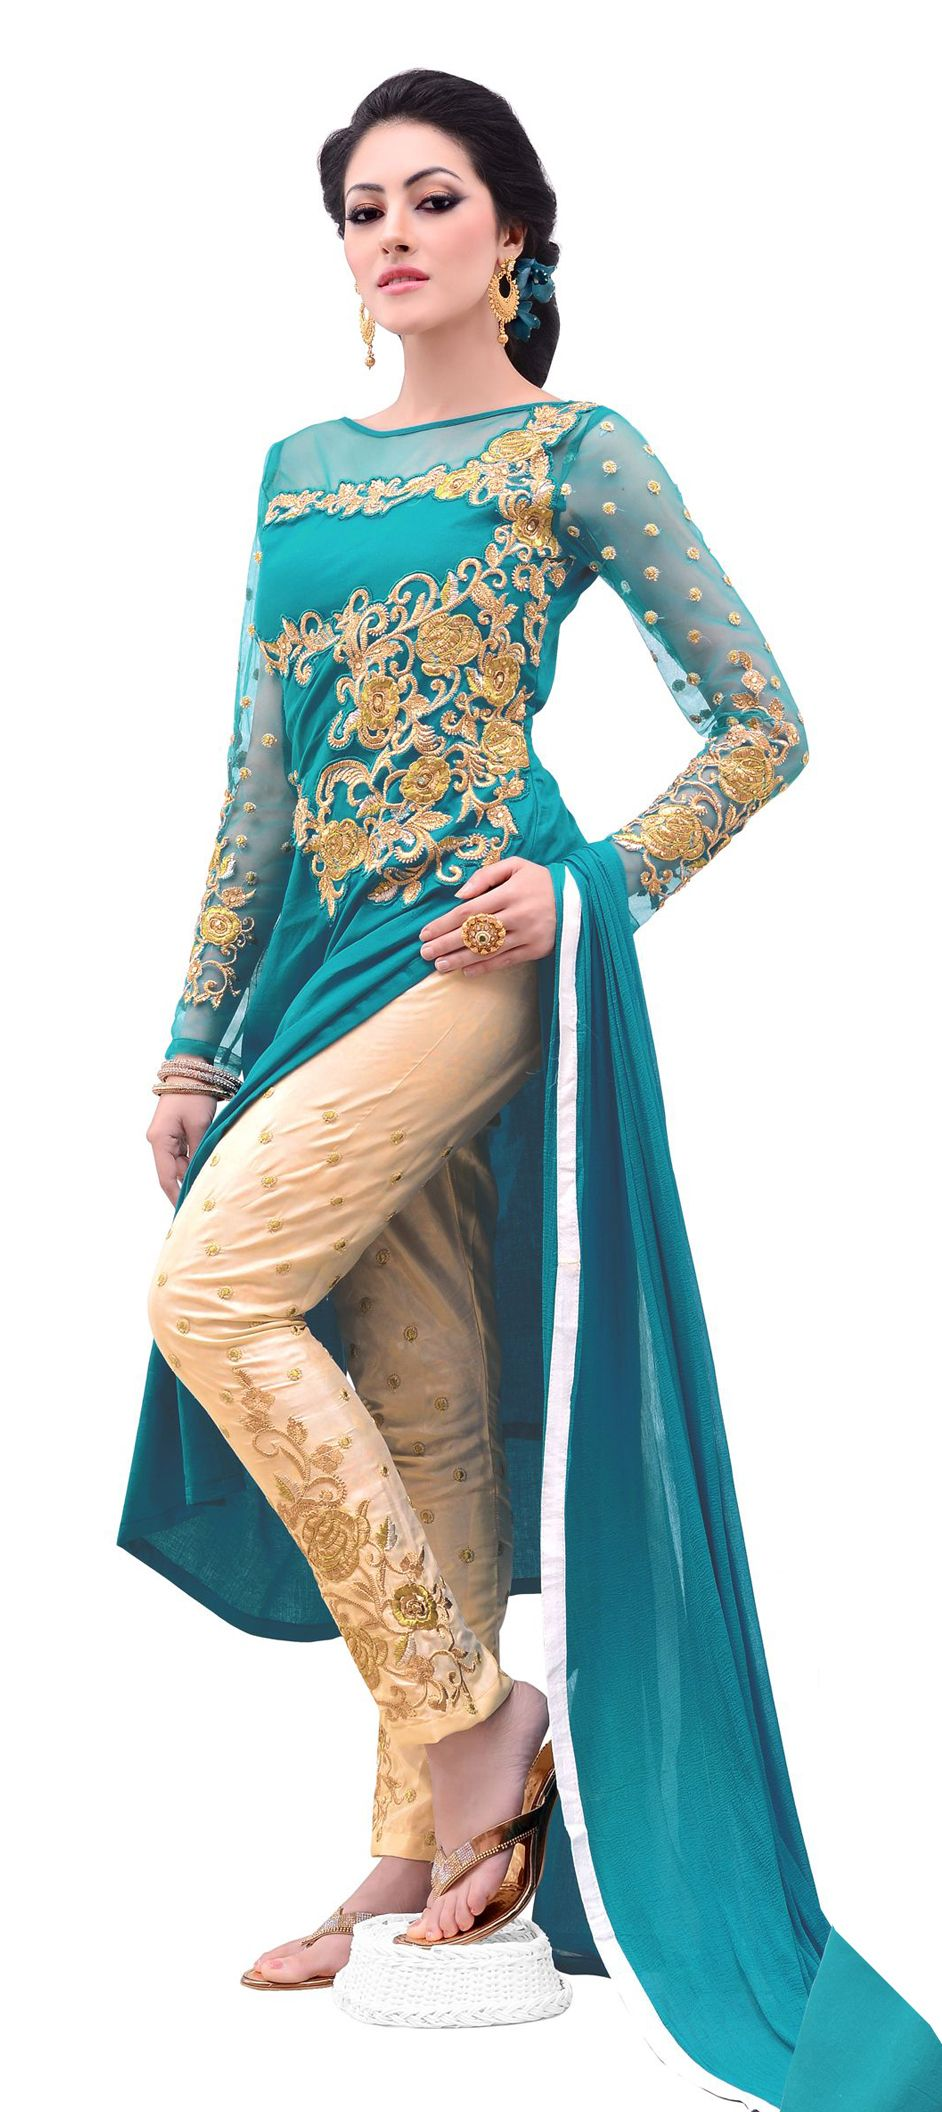 fashionothon - Patiala Salwar Suits #fashionothon new arrival online ...